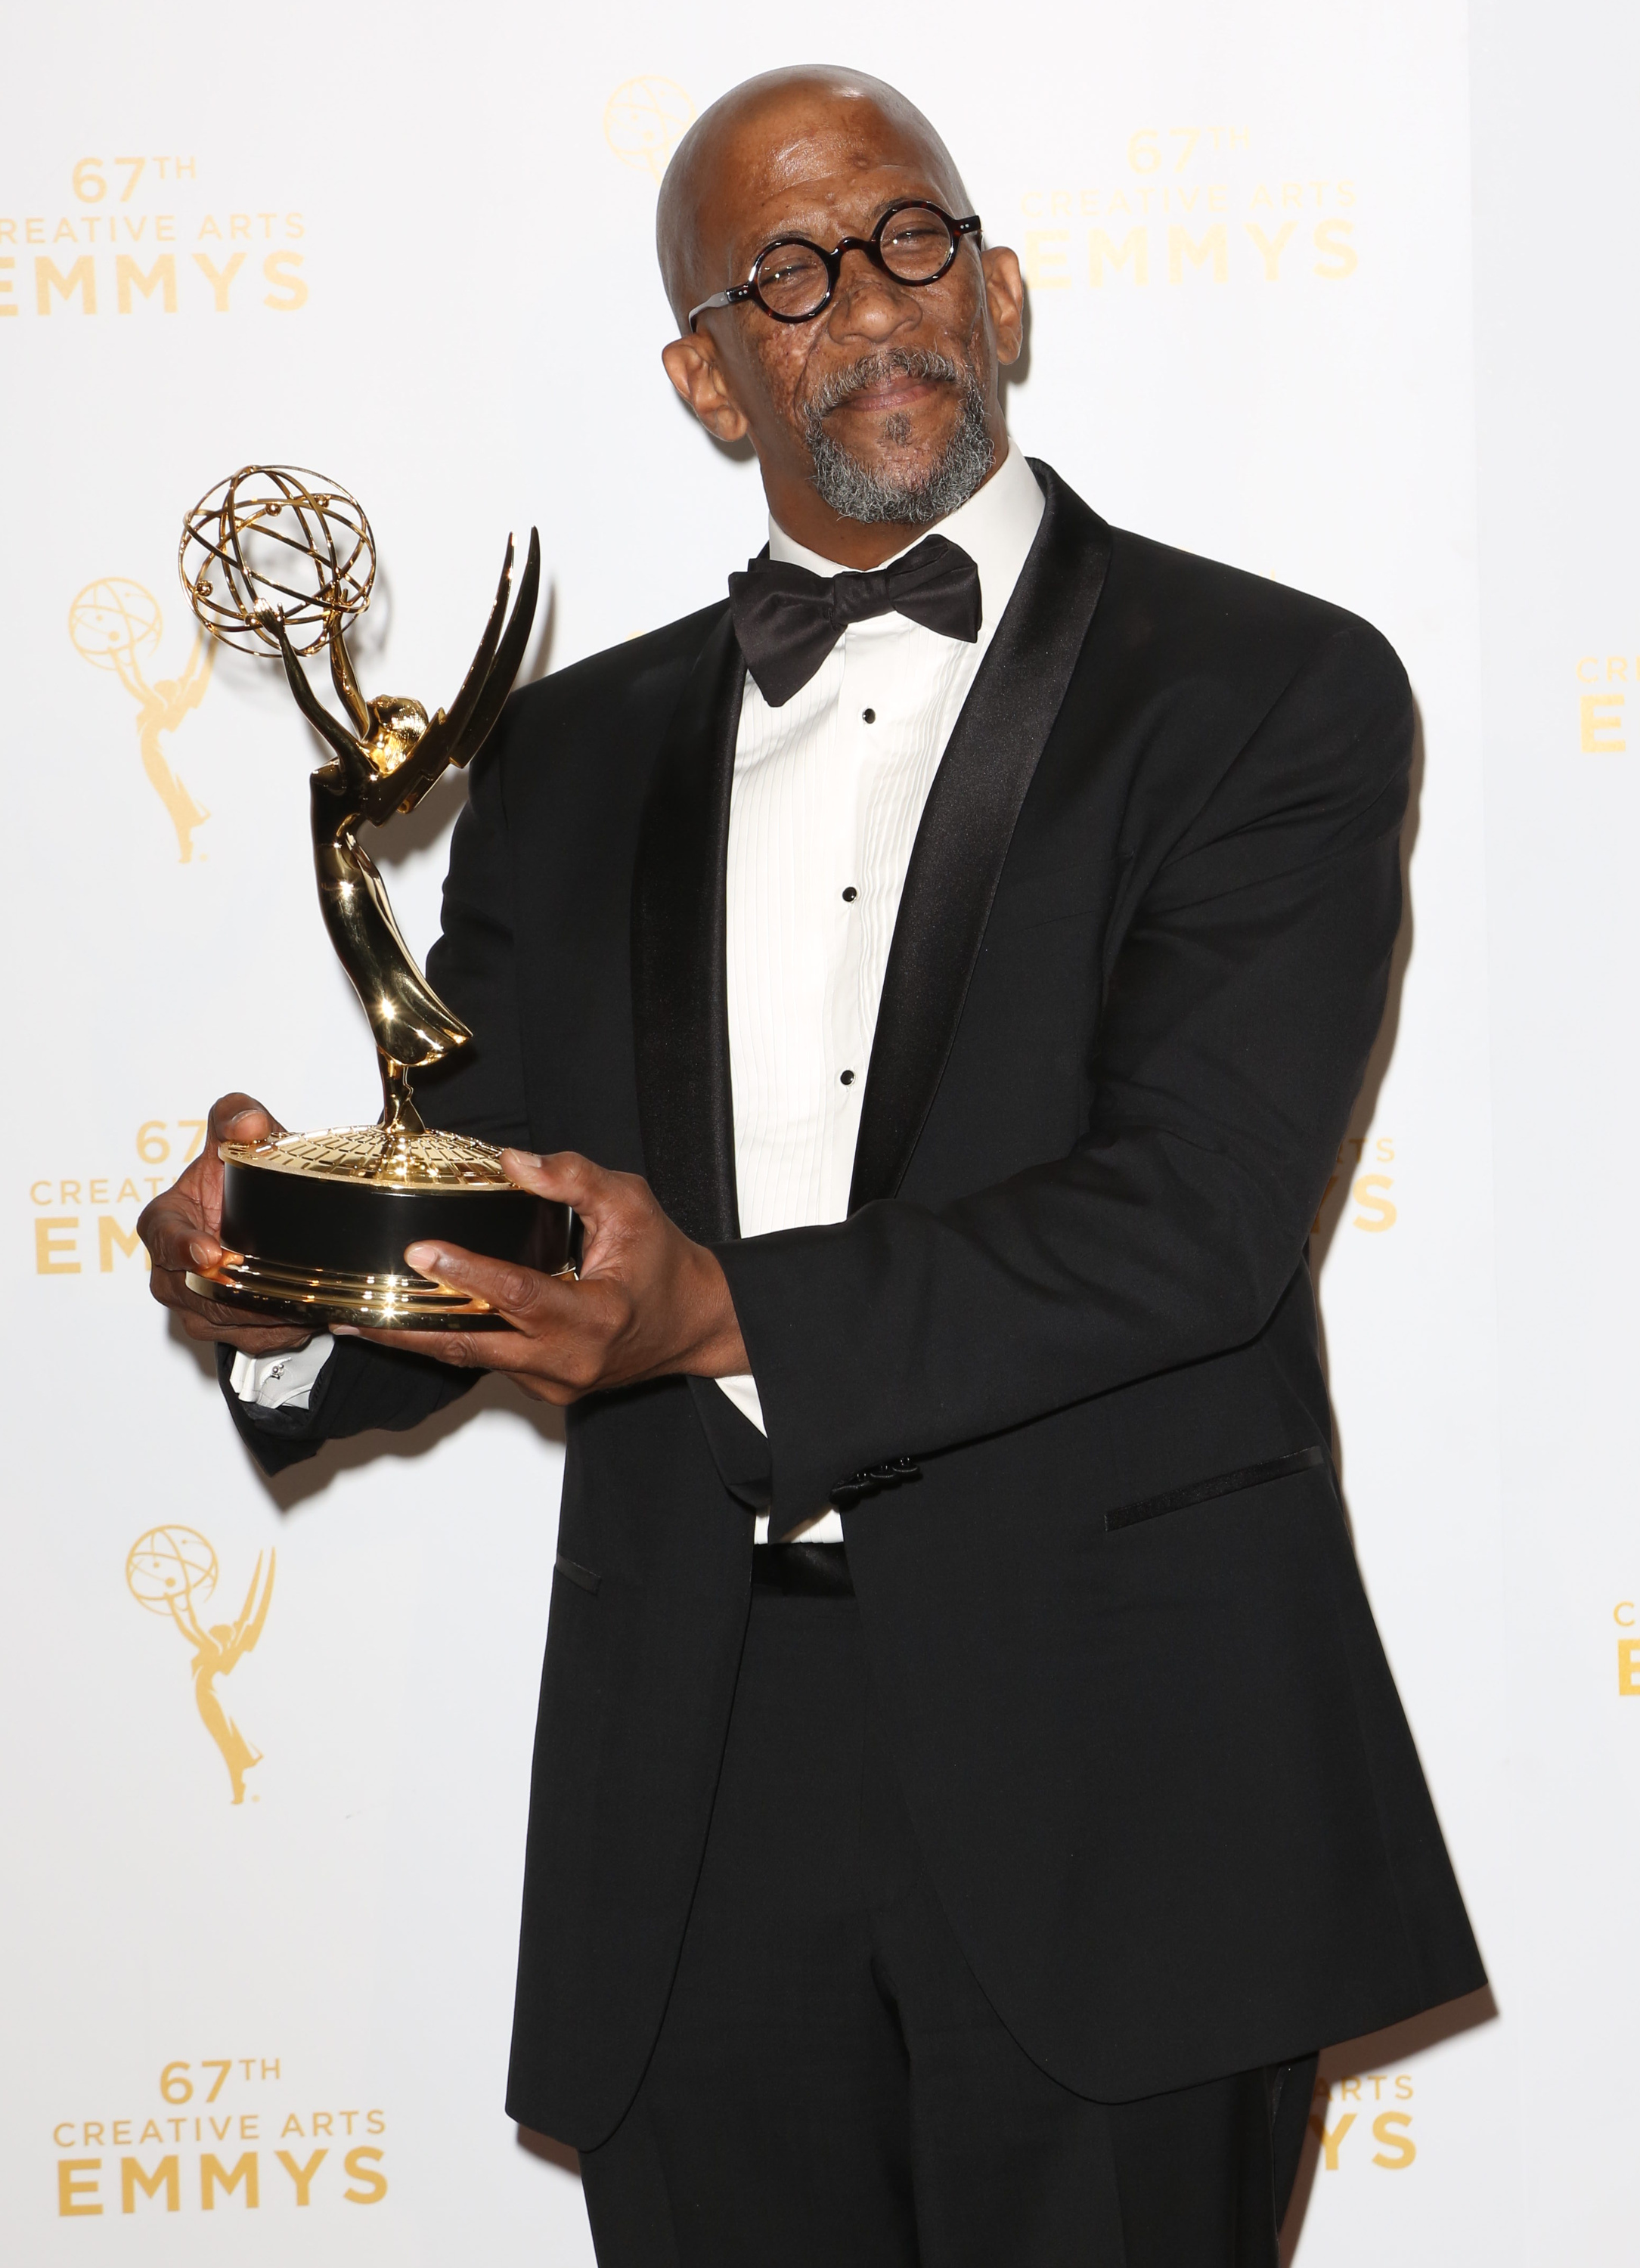 2015 Creative Arts Emmy Awards at Microsoft Theater- Press Room                                    Featuring: Reg E. Cathey                  Where: Los Angeles, California, United States                  When: 12 Sep 2015                  Credit: Brian To/WENN.com